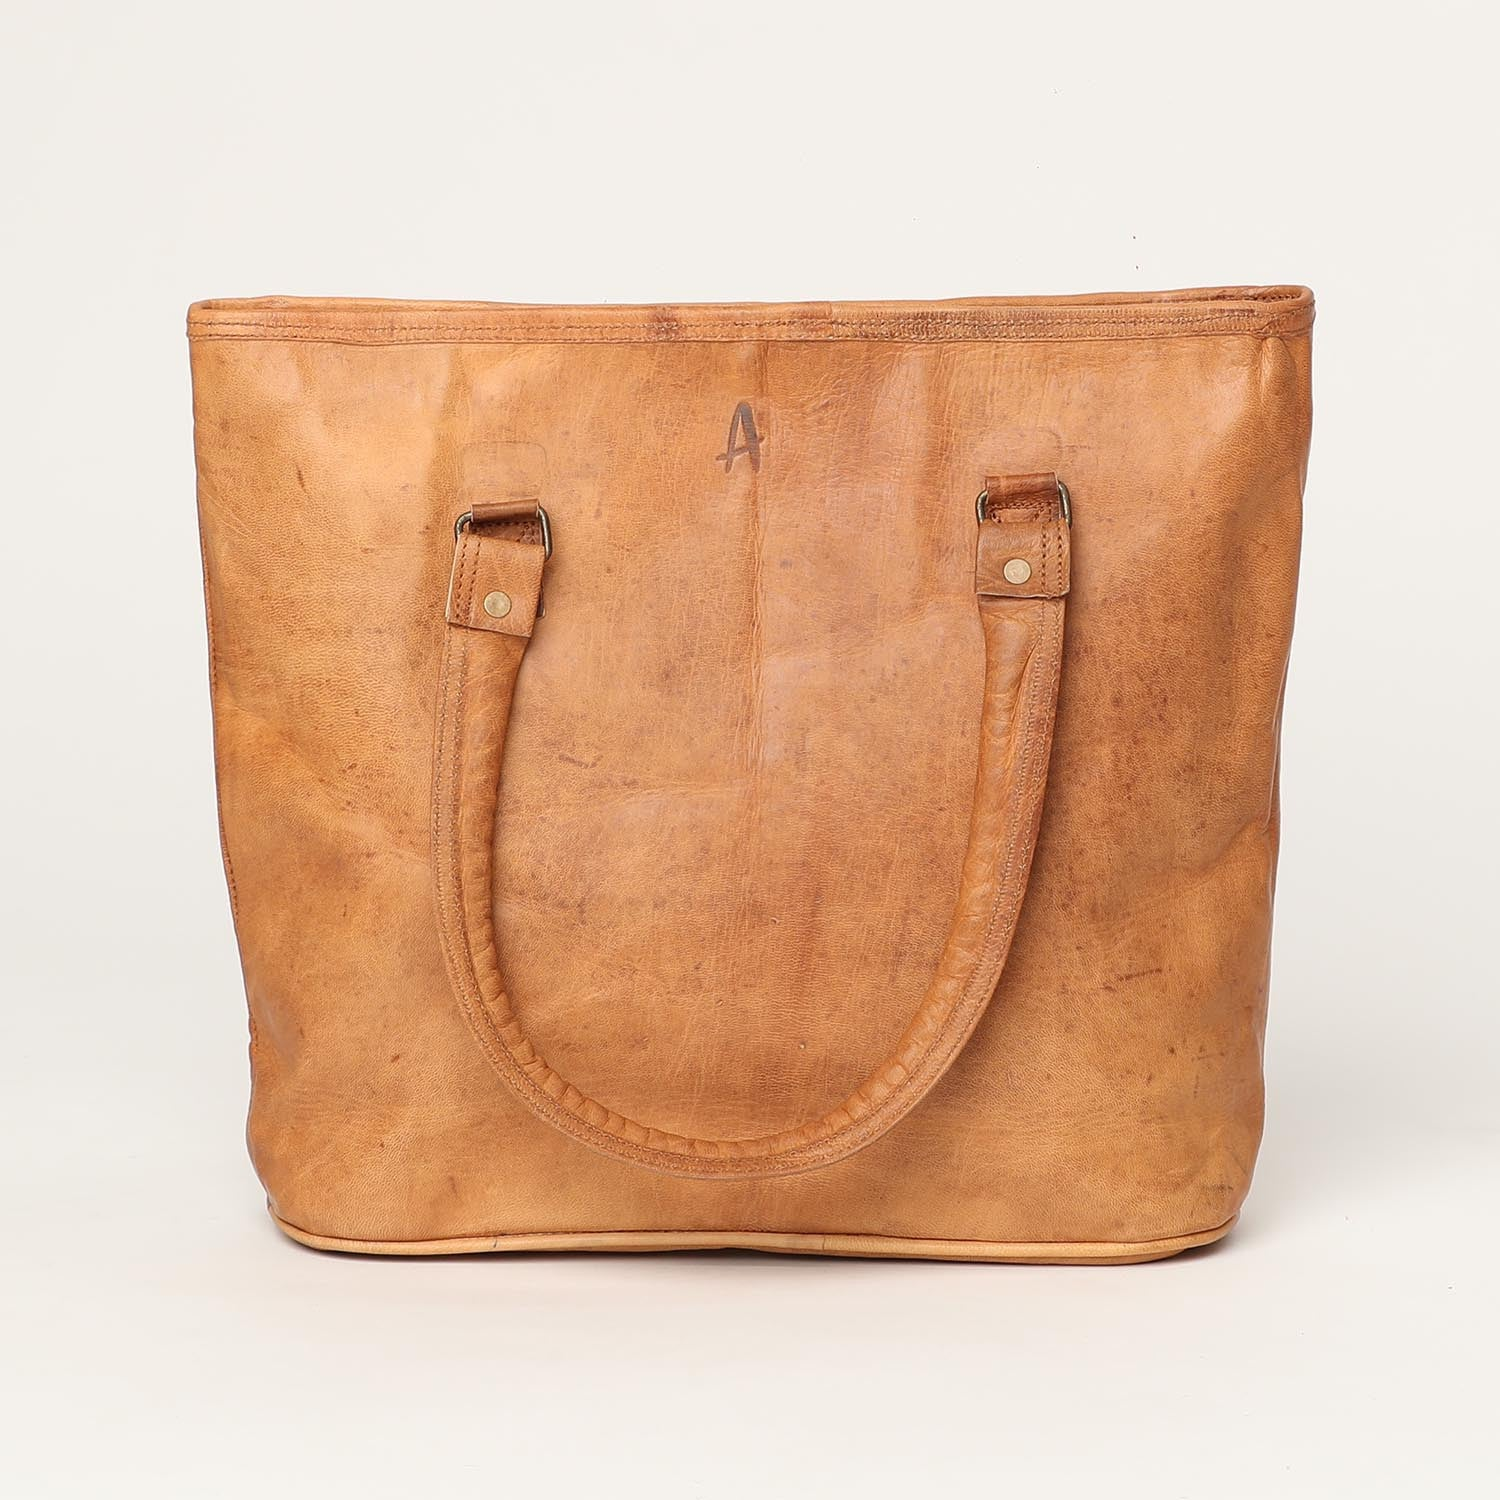 Tote bag - leather bags